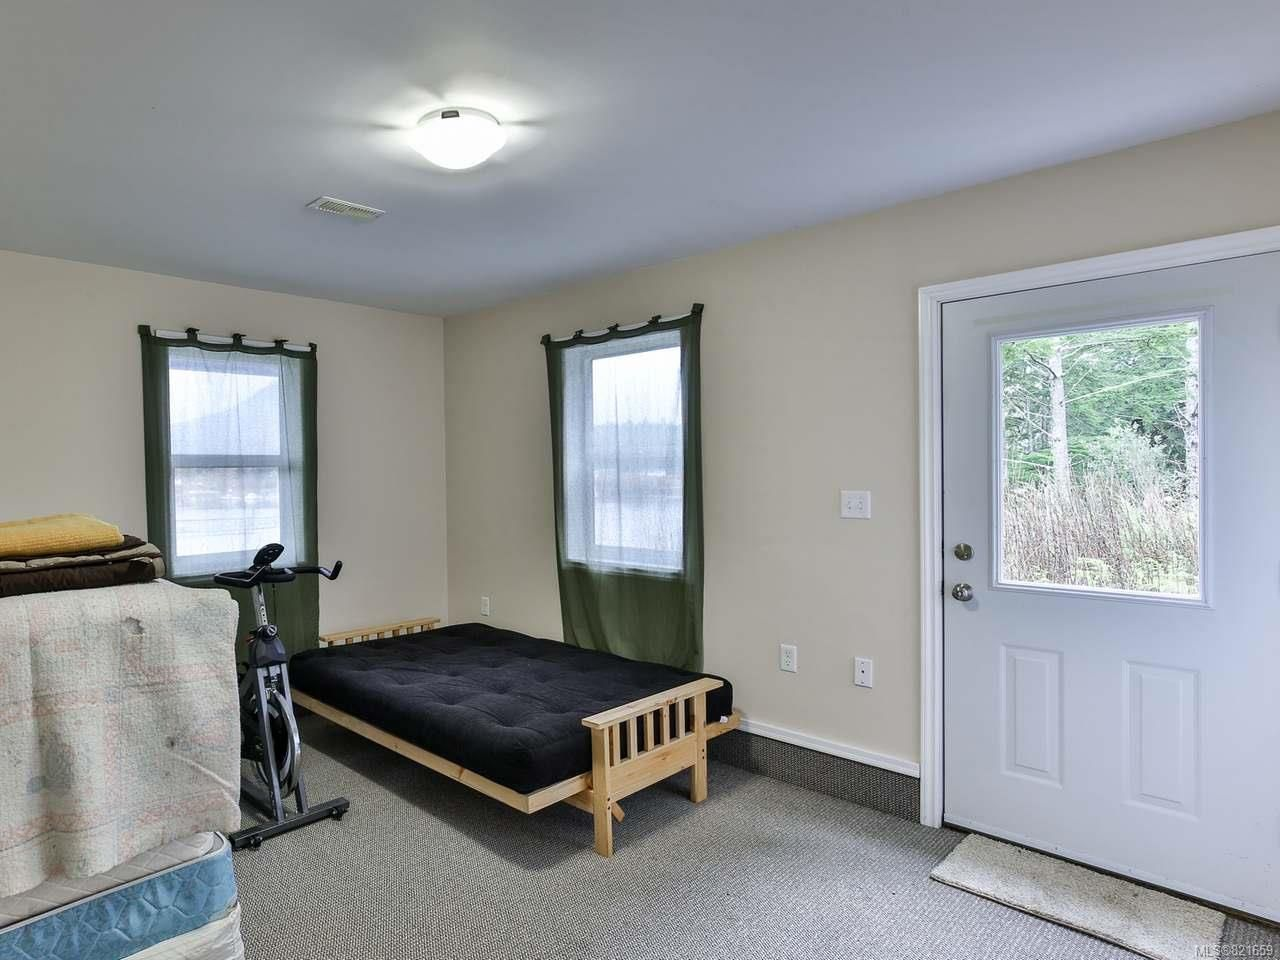 Photo 51: Photos: 1049 Helen Rd in UCLUELET: PA Ucluelet House for sale (Port Alberni)  : MLS®# 821659